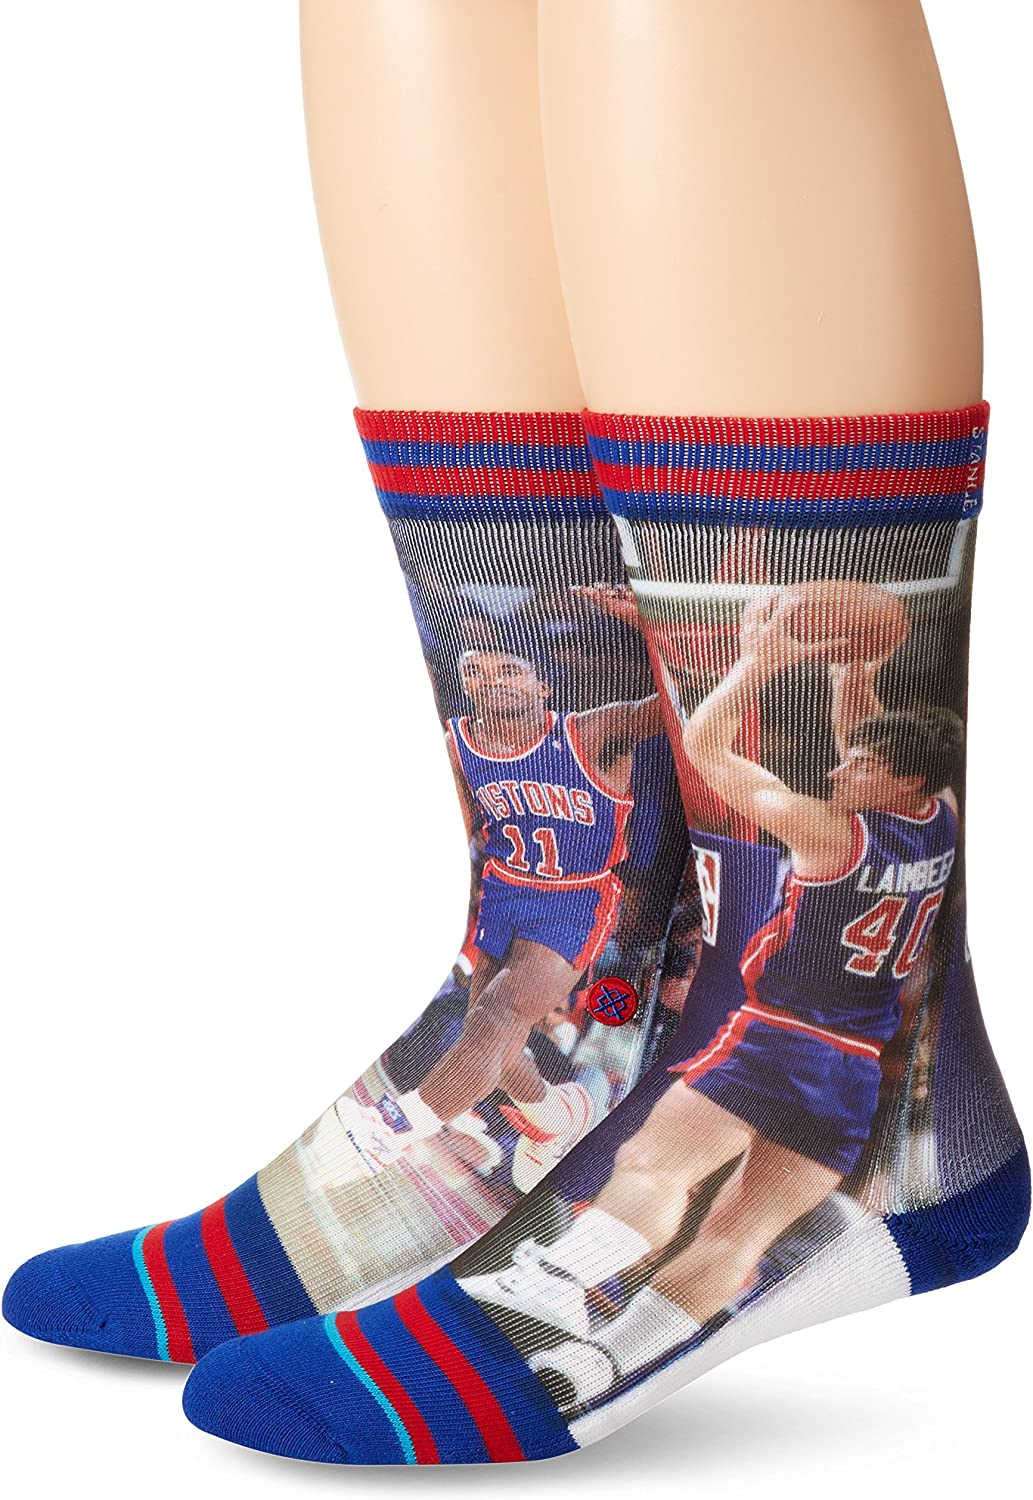 Stance Men's Thomas/lambeer Detriot Pistons